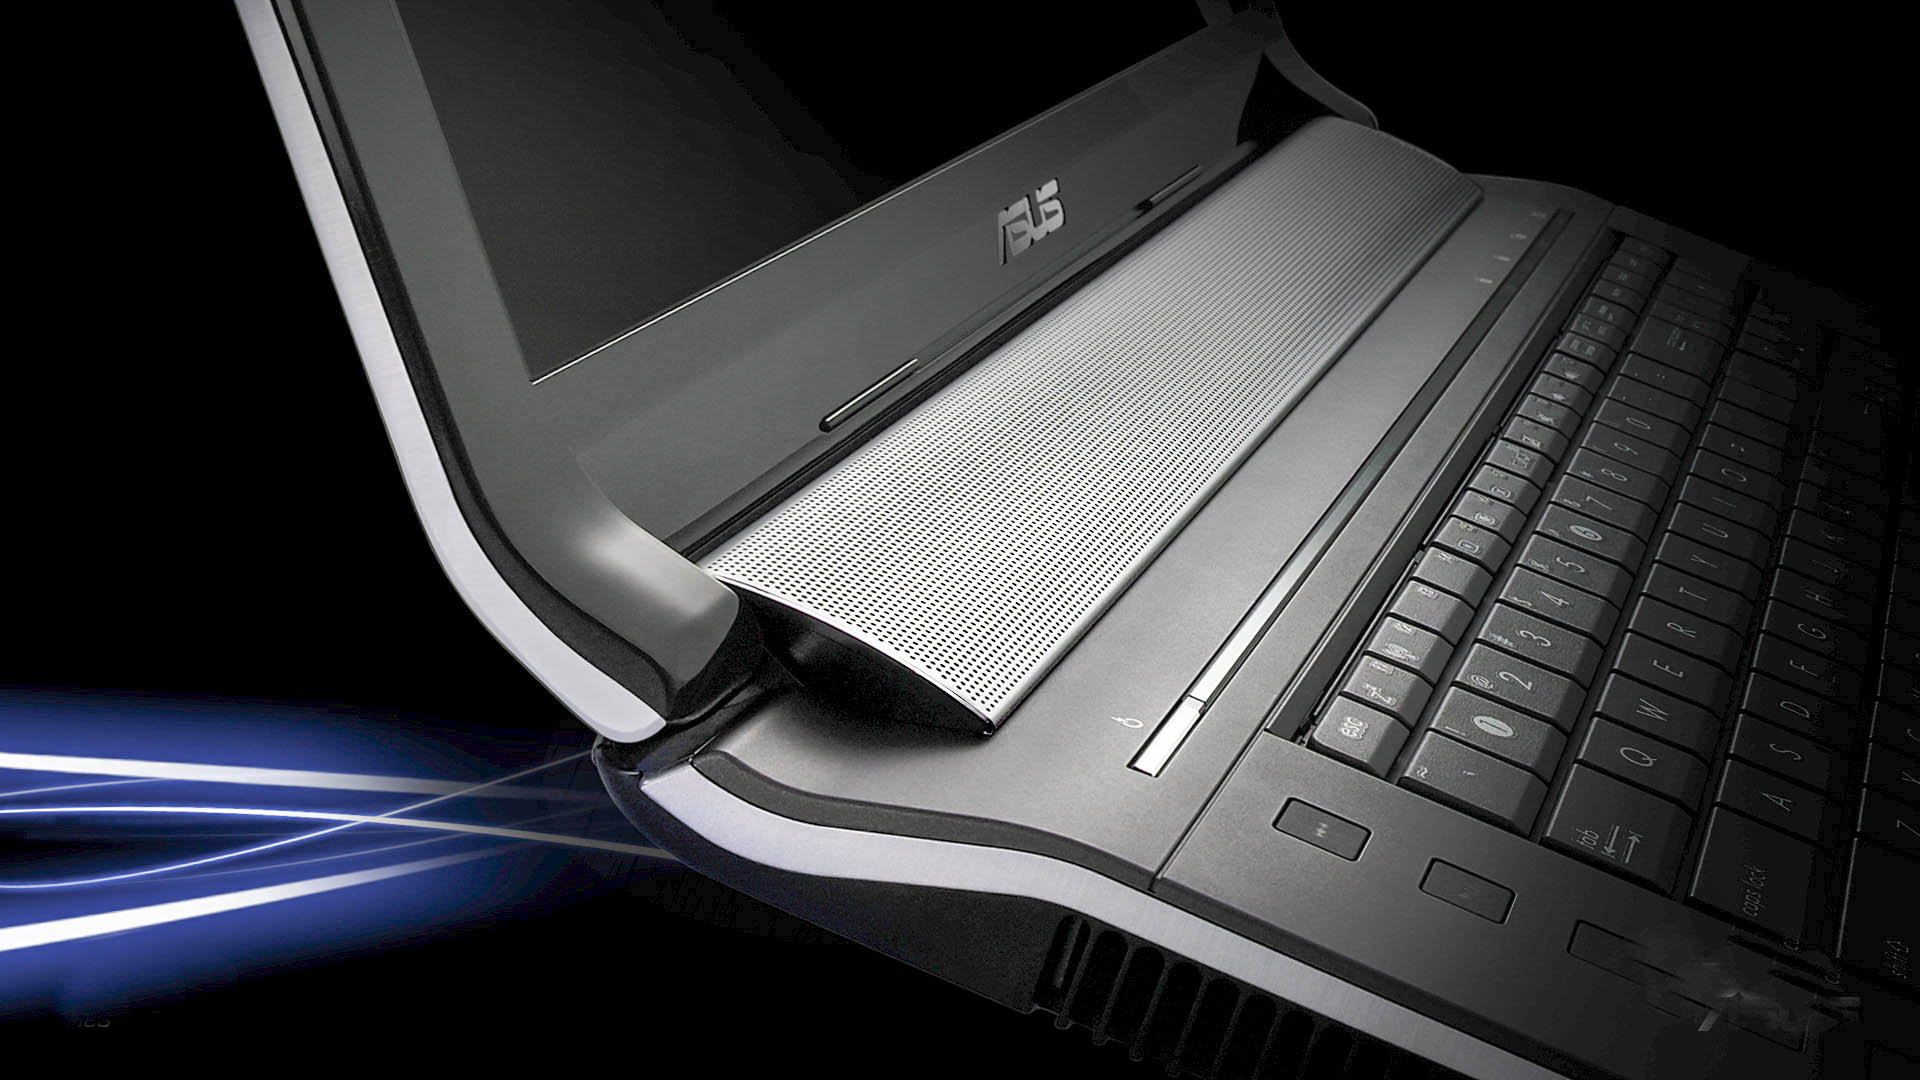 Asus Technology Hd Wallpapers High Quality All Hd